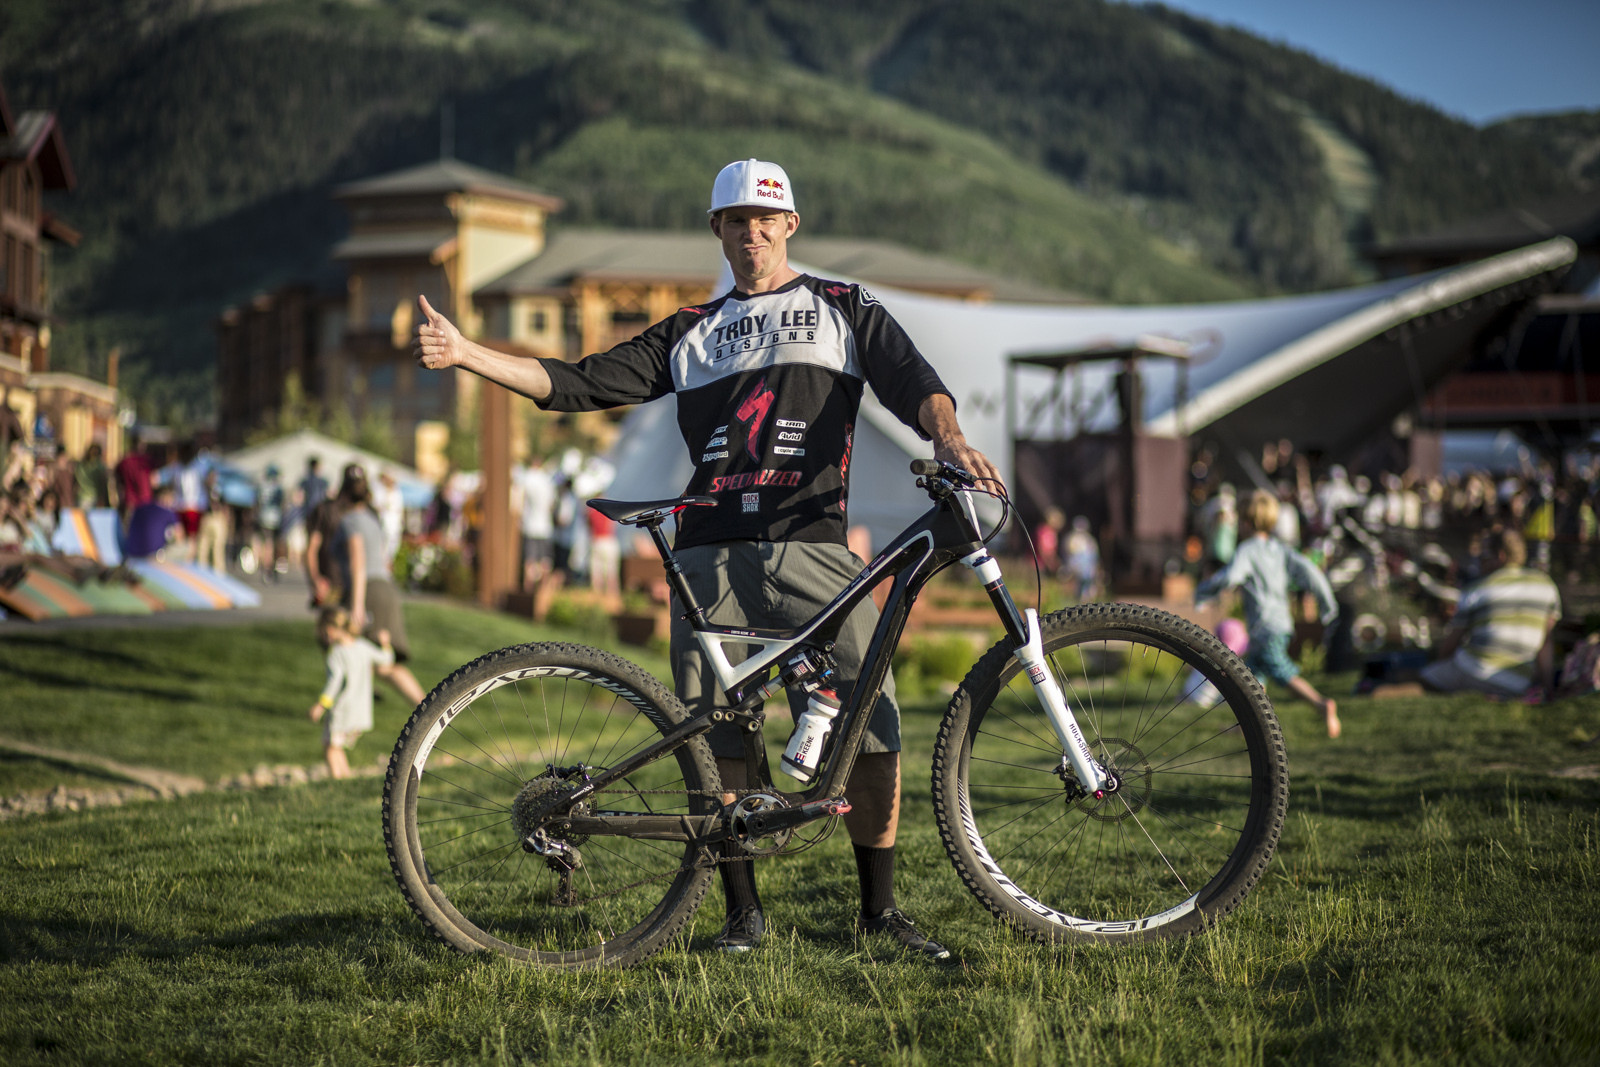 Winning Bike: Curtis Keene's Specialized Stumpjumper EVO 29 - Winning Bike: Curtis Keene's Specialized Stumpjumper EVO 29 - Mountain Biking Pictures - Vital MTB